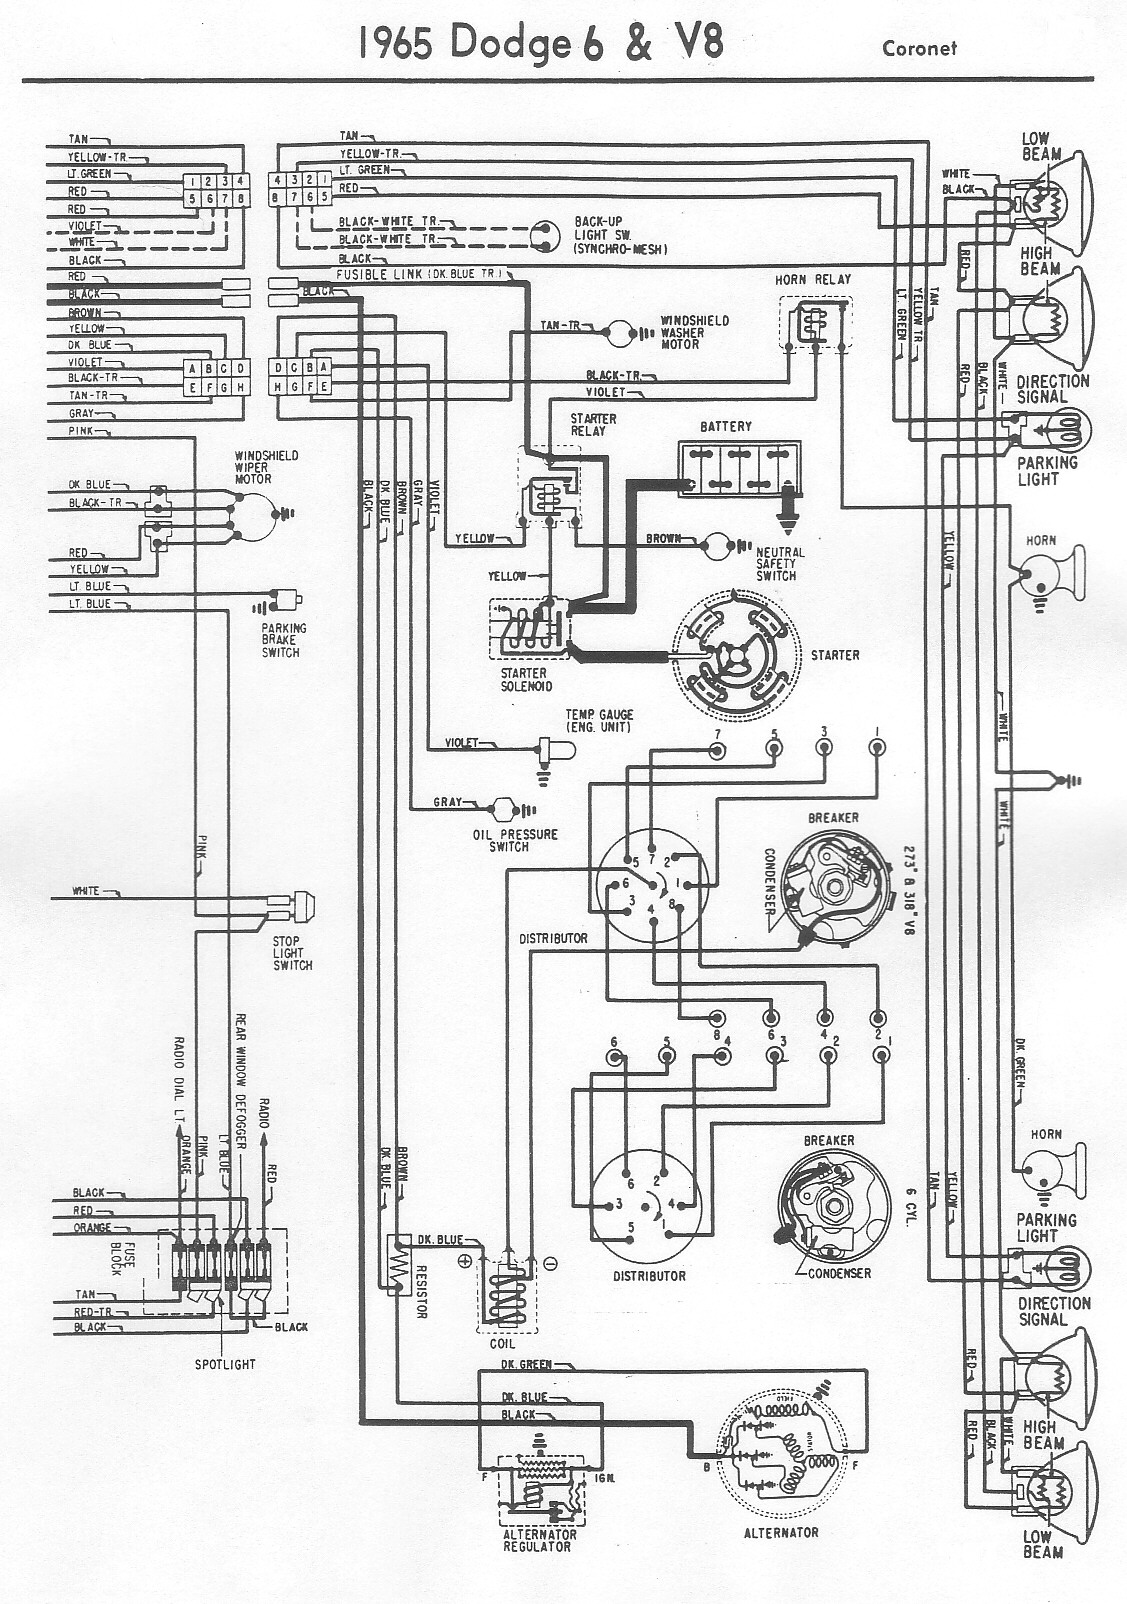 1964 Cuda Wiring Harness Diagram Data 1966 Barracuda Auto Electrical Women Of